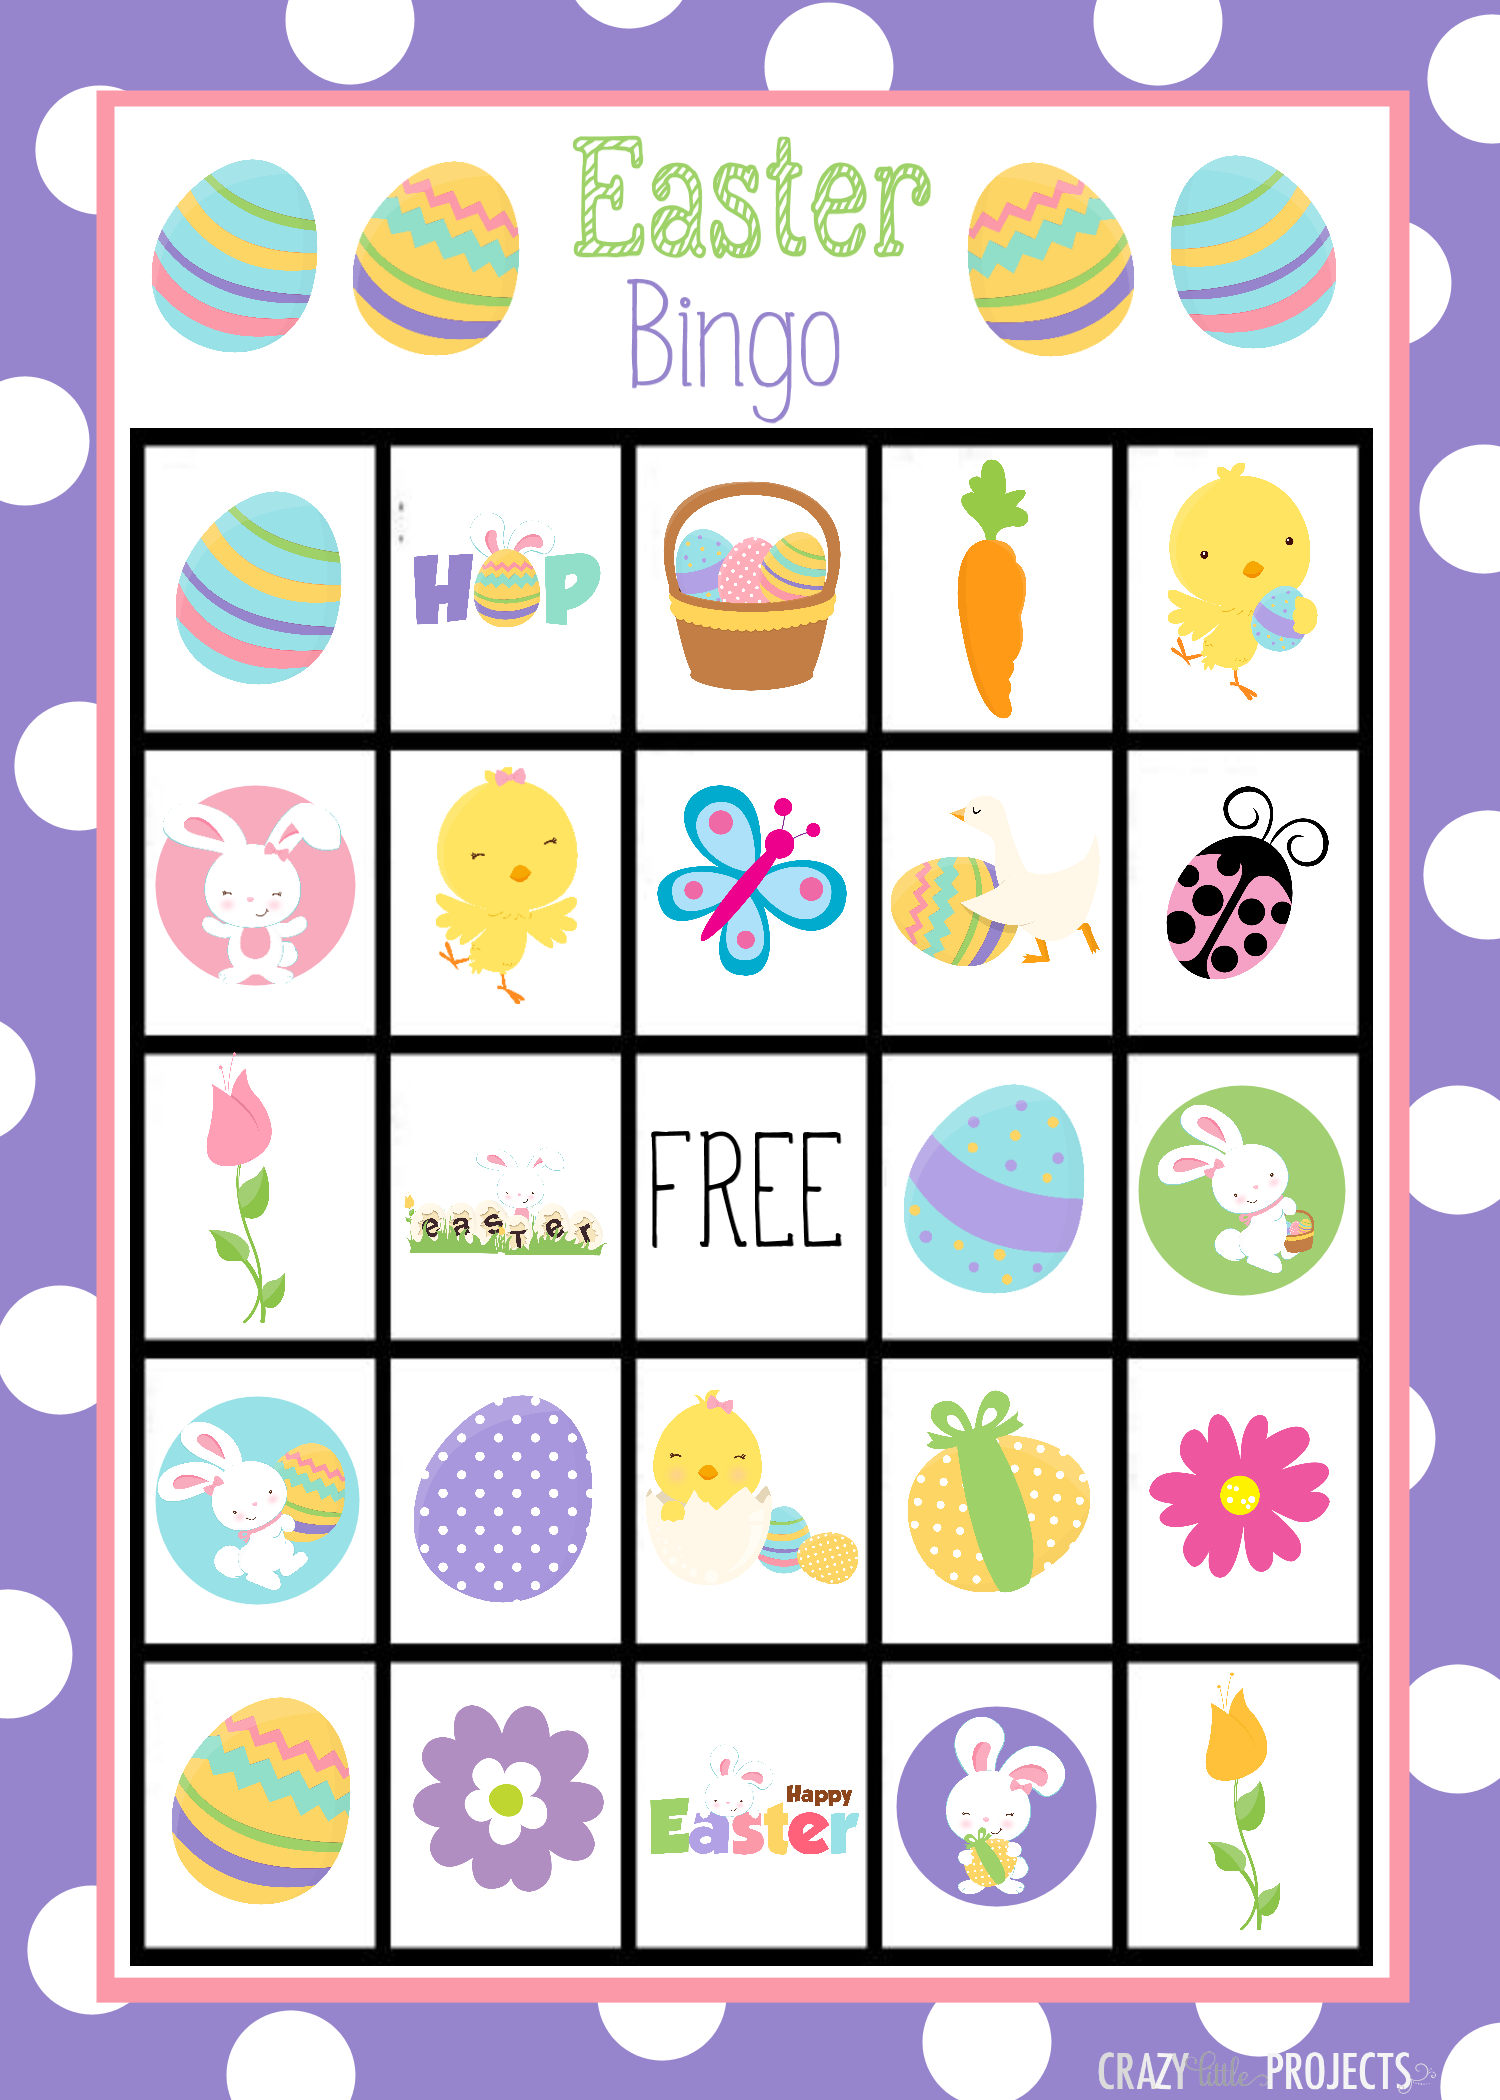 fun bingo games to print out and play